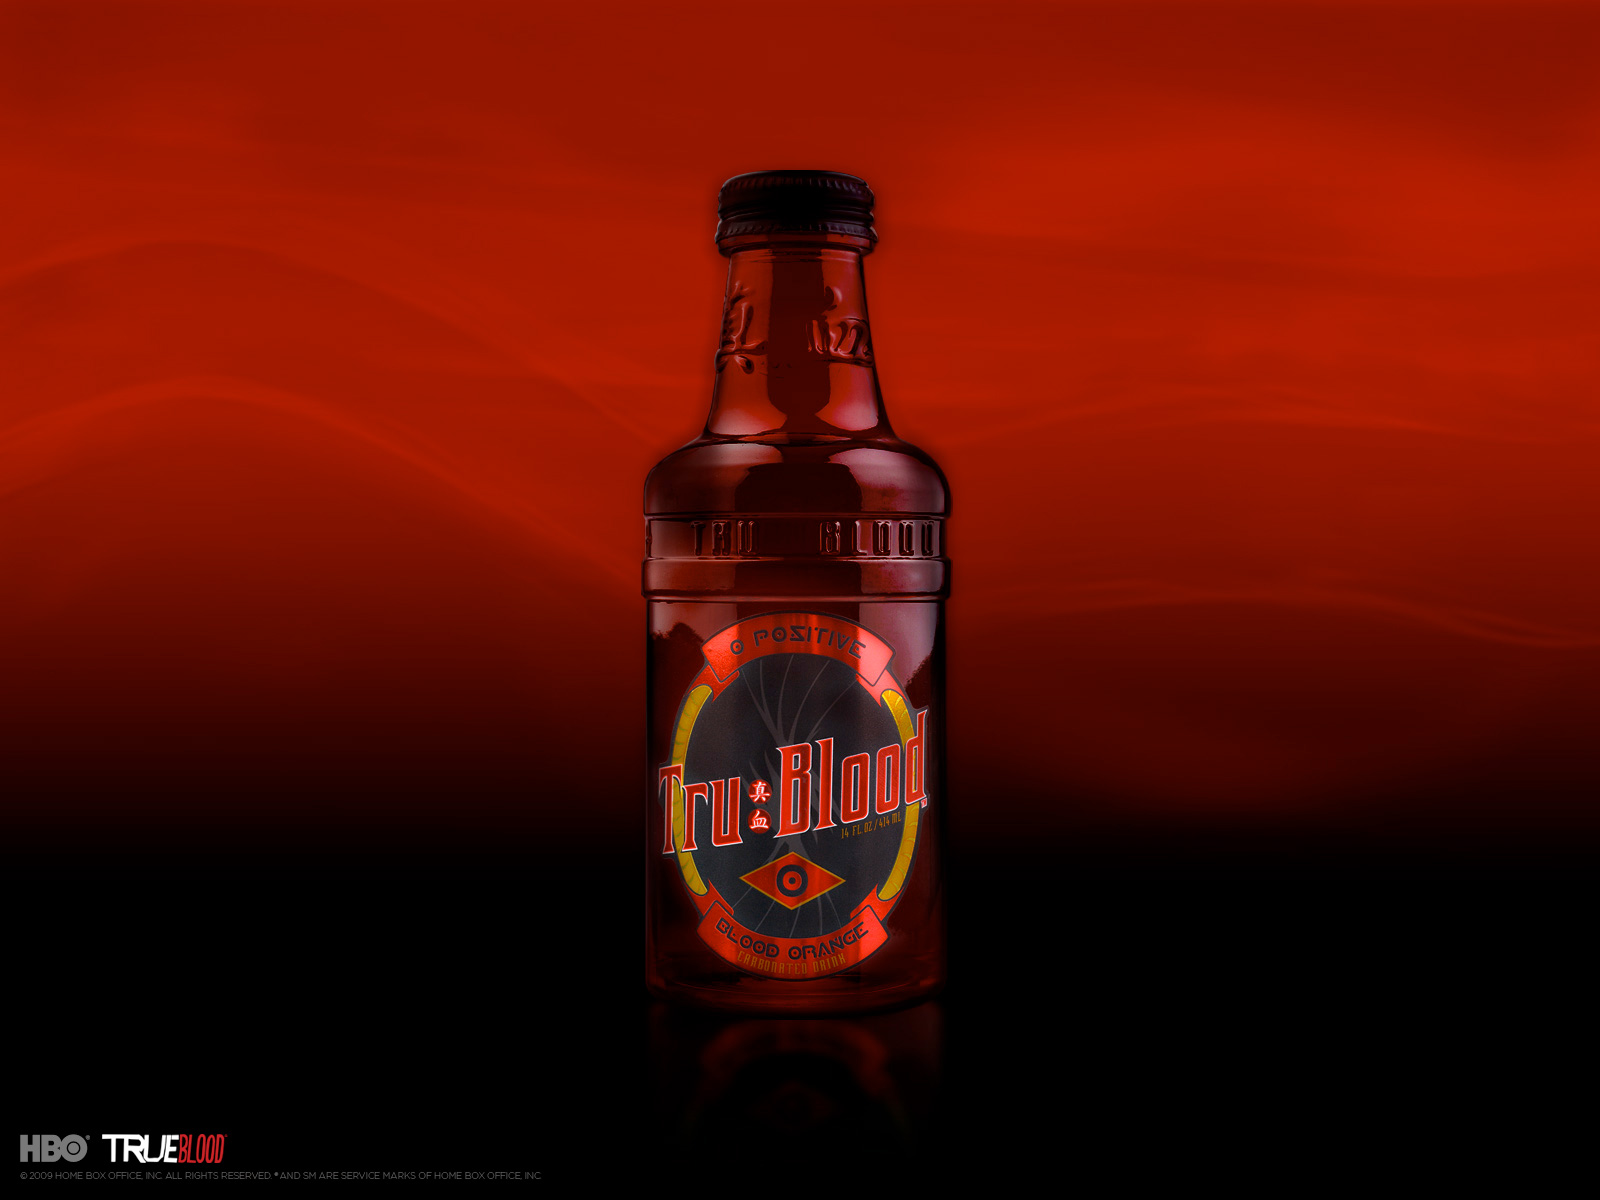 Die Wallpaper With Quotes Tru Blood Bottle 3 Wallpapers Tru Blood Bottle 3 Stock